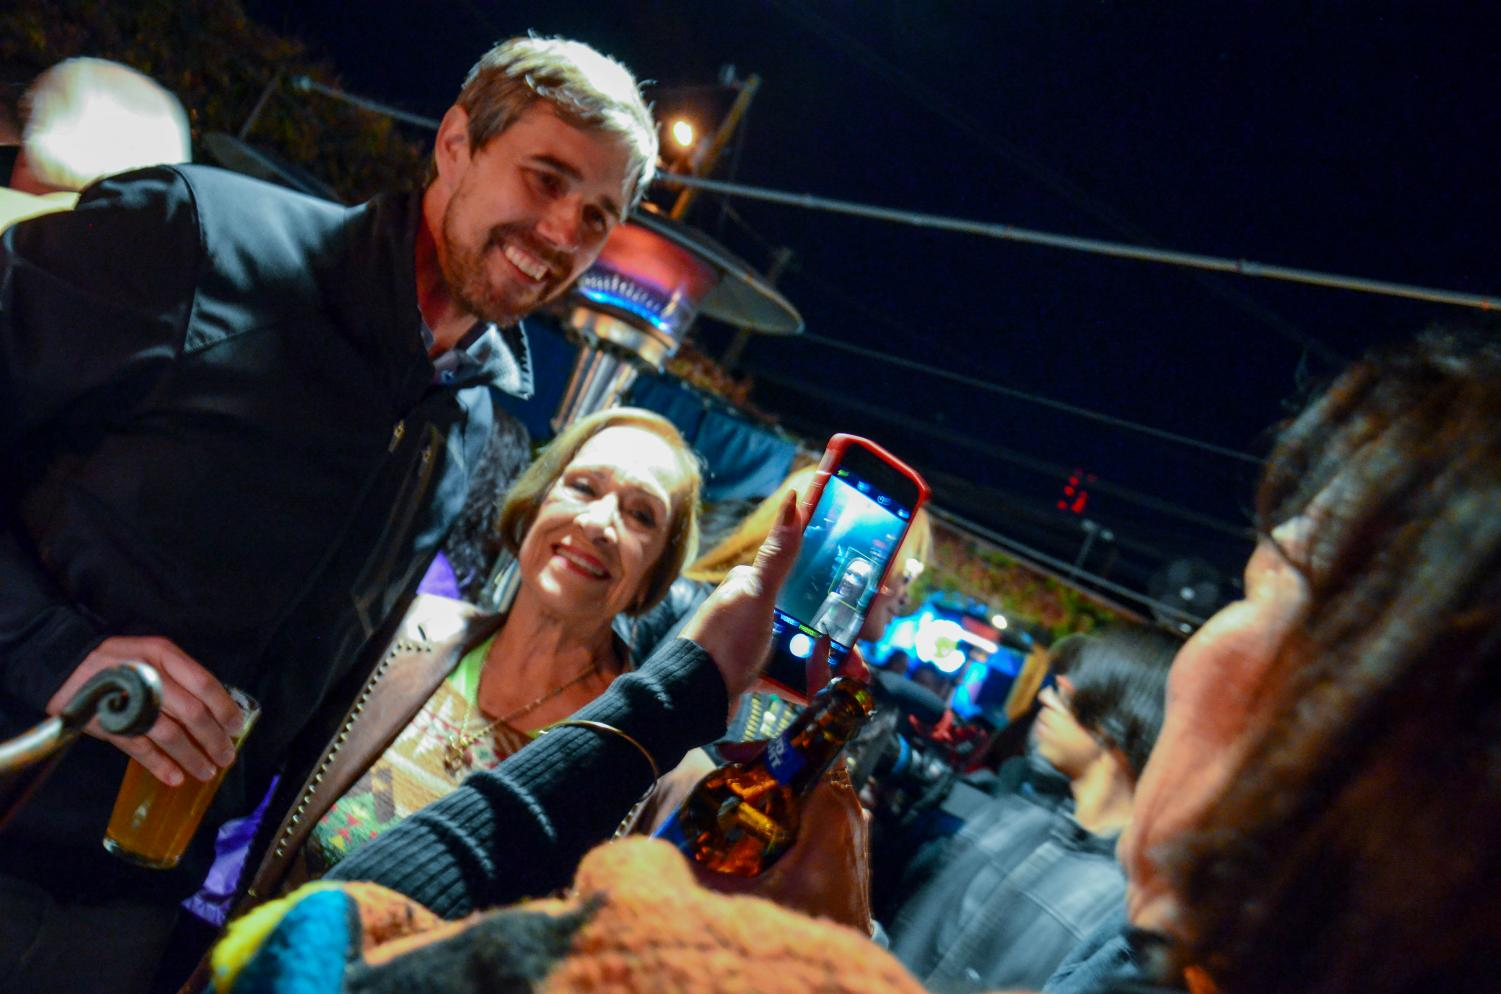 Rebecca Reza/ The Prospector Supporters of Beto O'Rourke gather to grab a photo and chat with the former Presidential candidate.